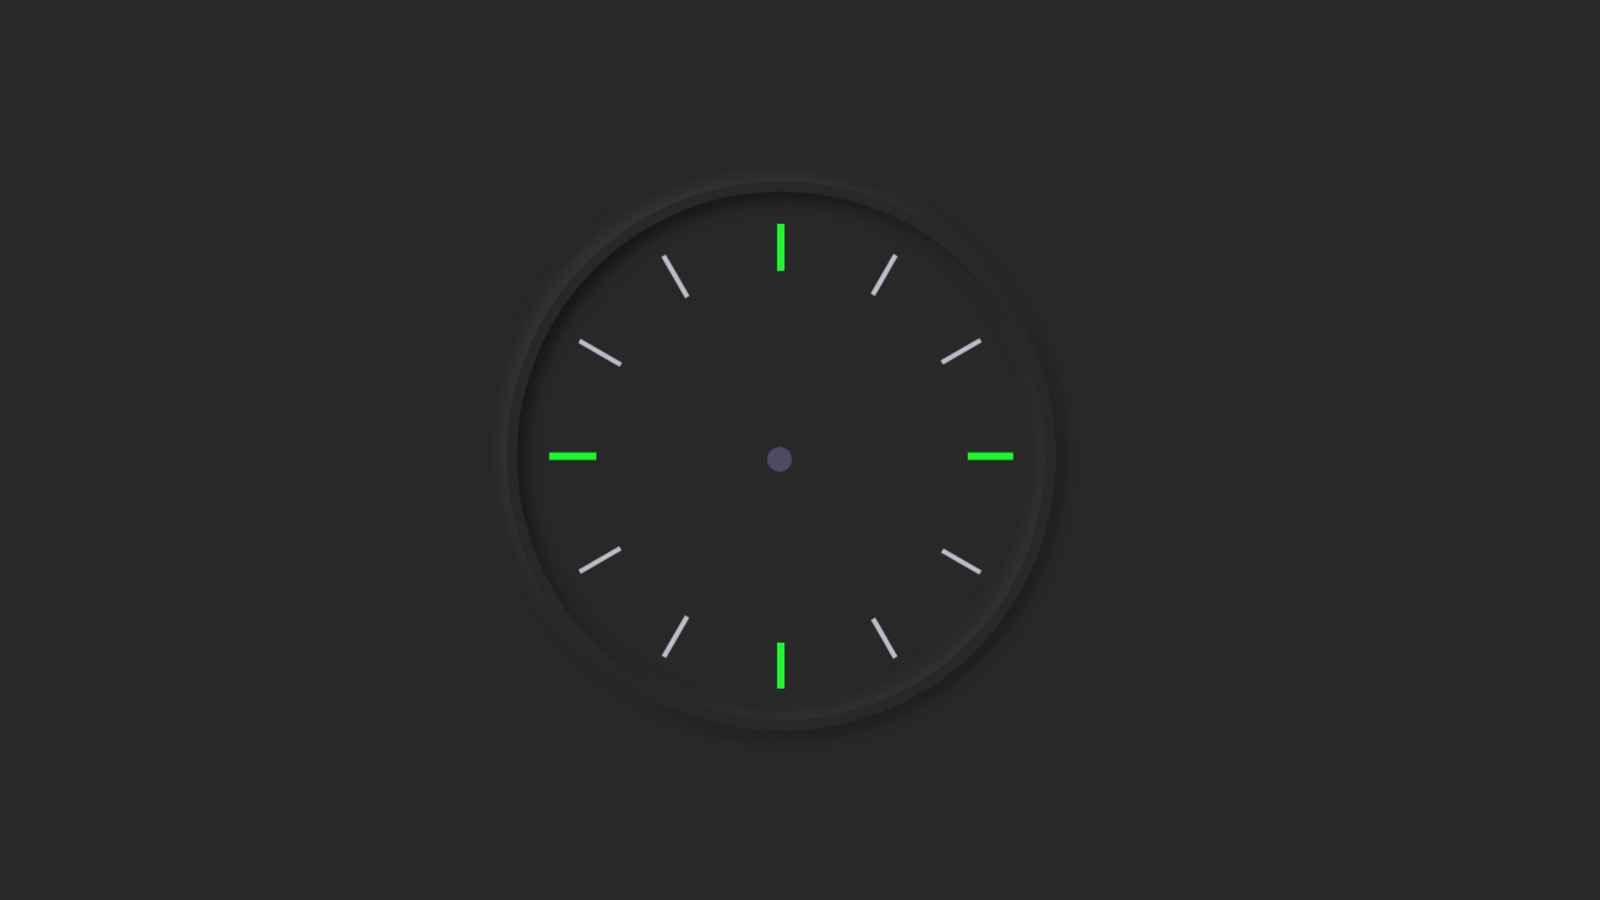 I made a circle using the HTML and CSS code below.